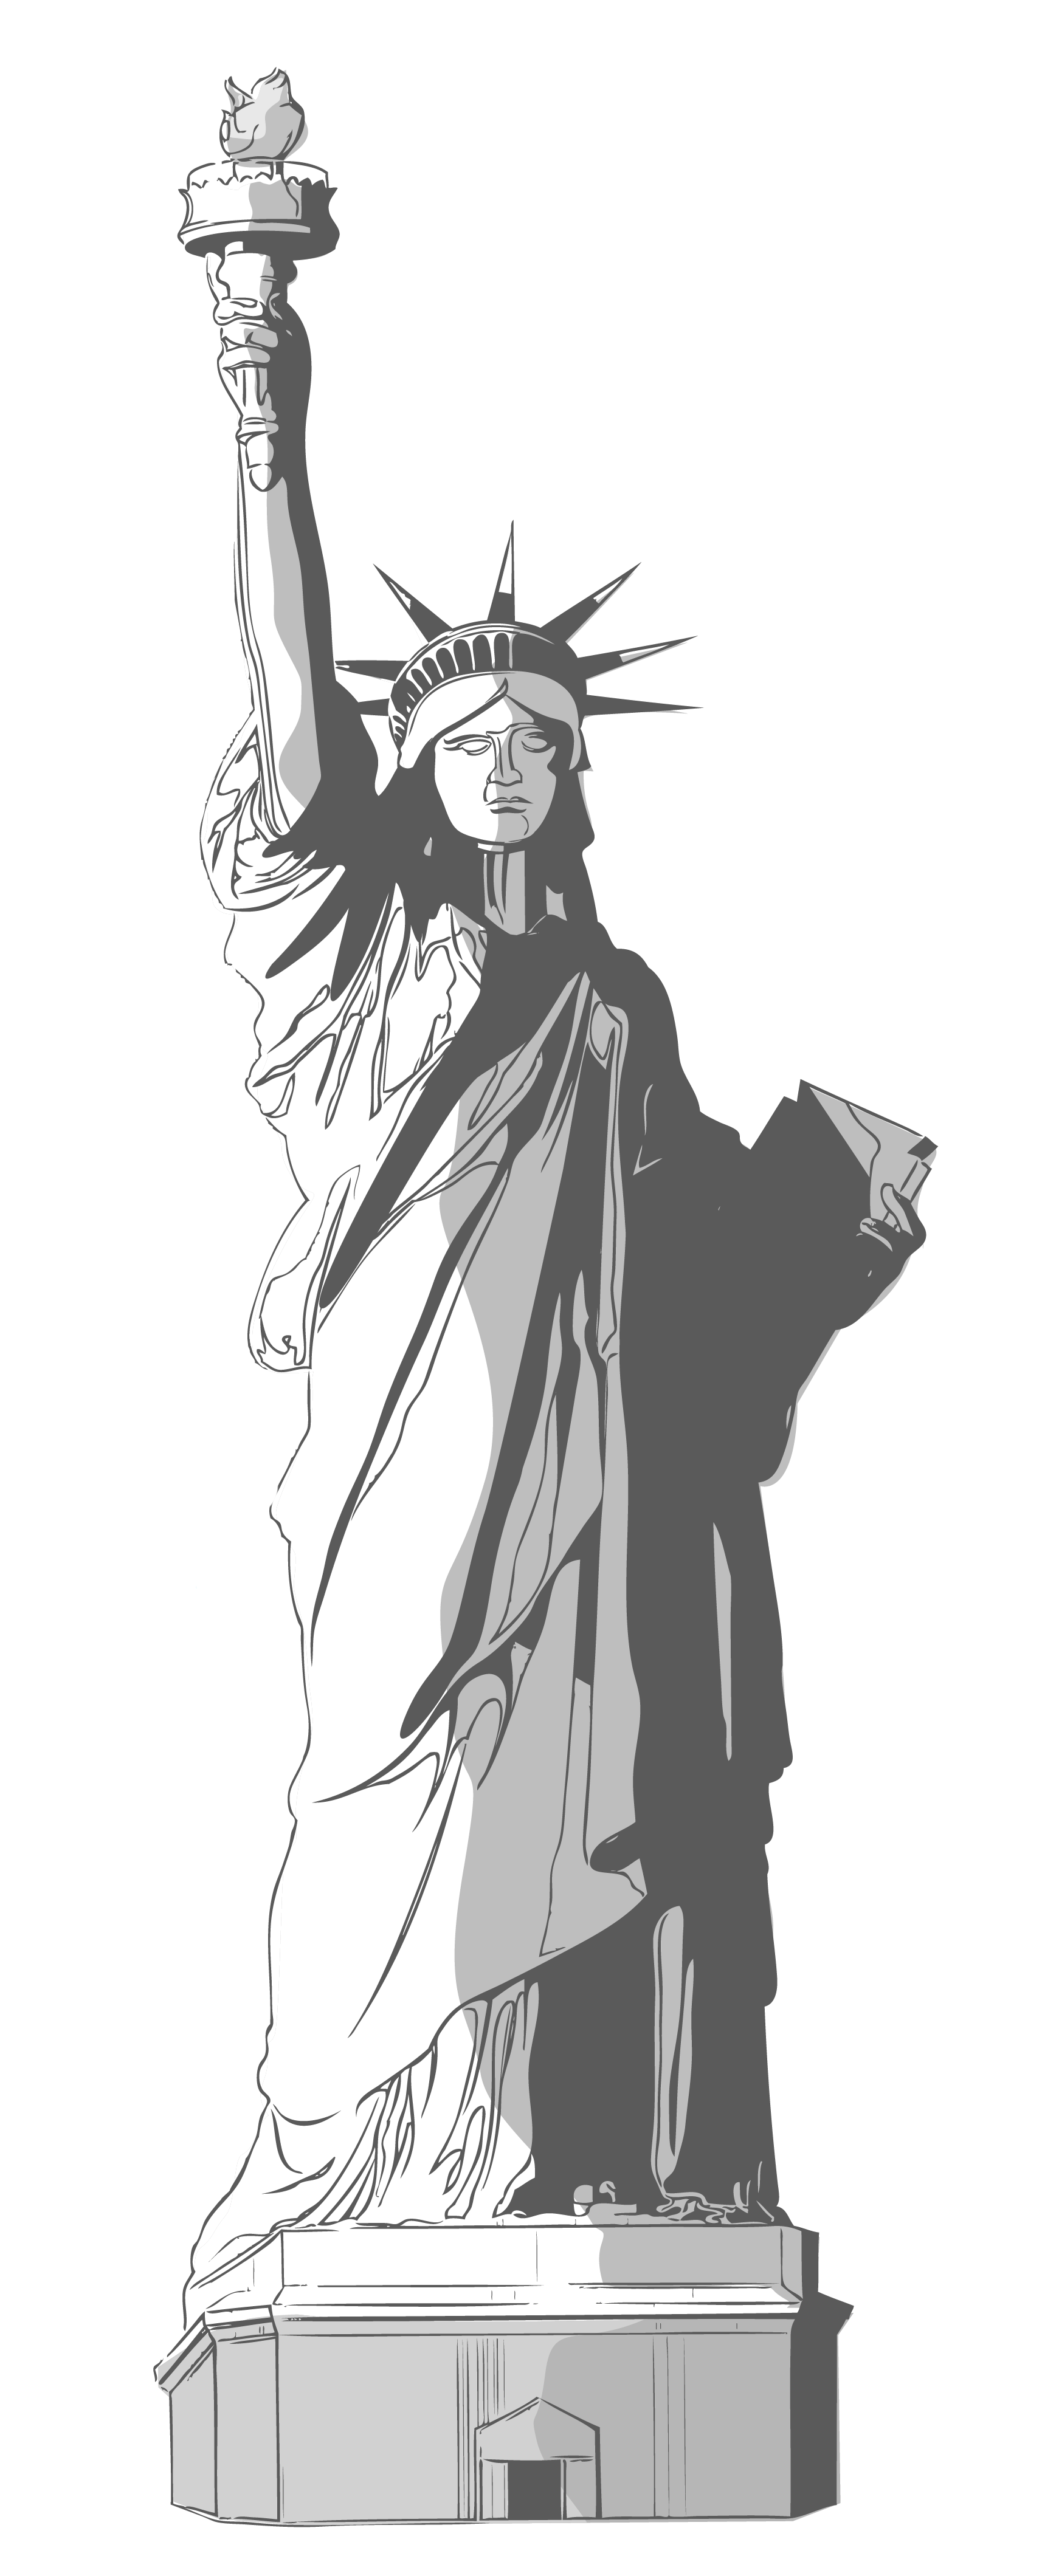 Statue of liberty clipart 2.